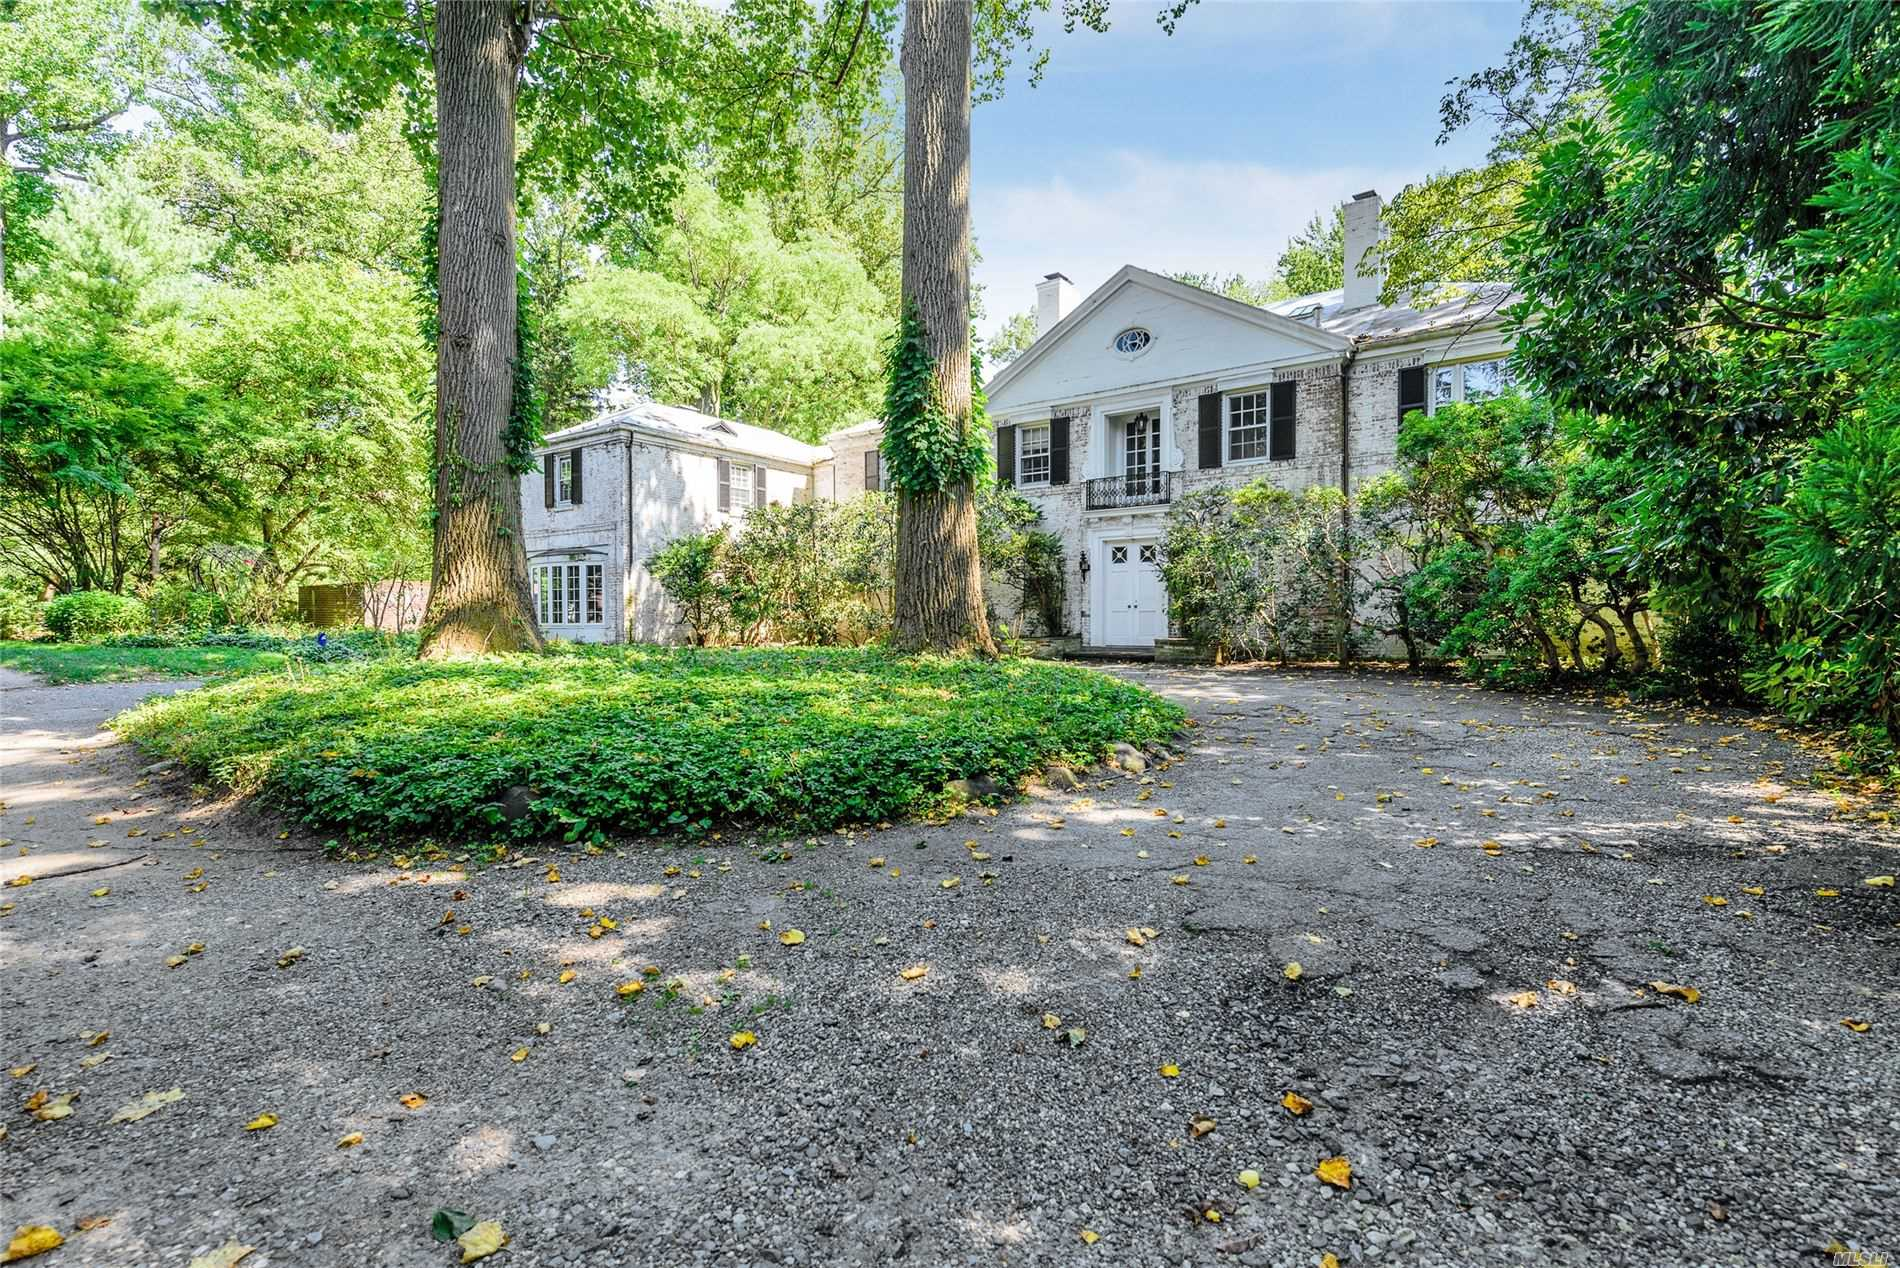 27 Lavenders Ct - Manhasset, New York